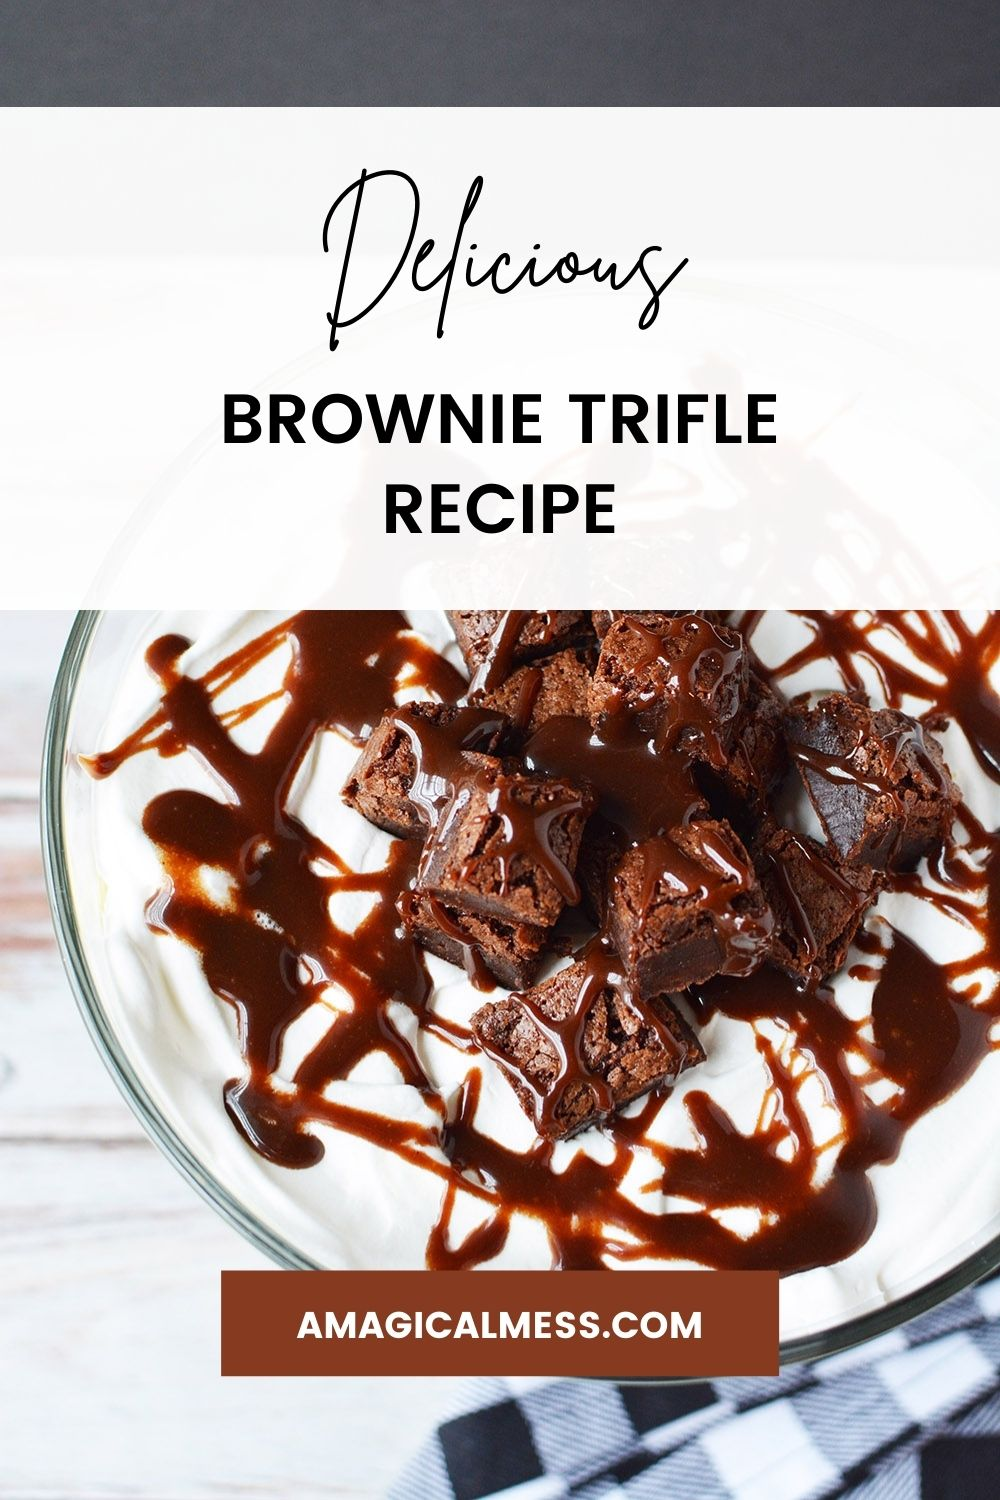 Top of a brownie trifle with hot fudge.